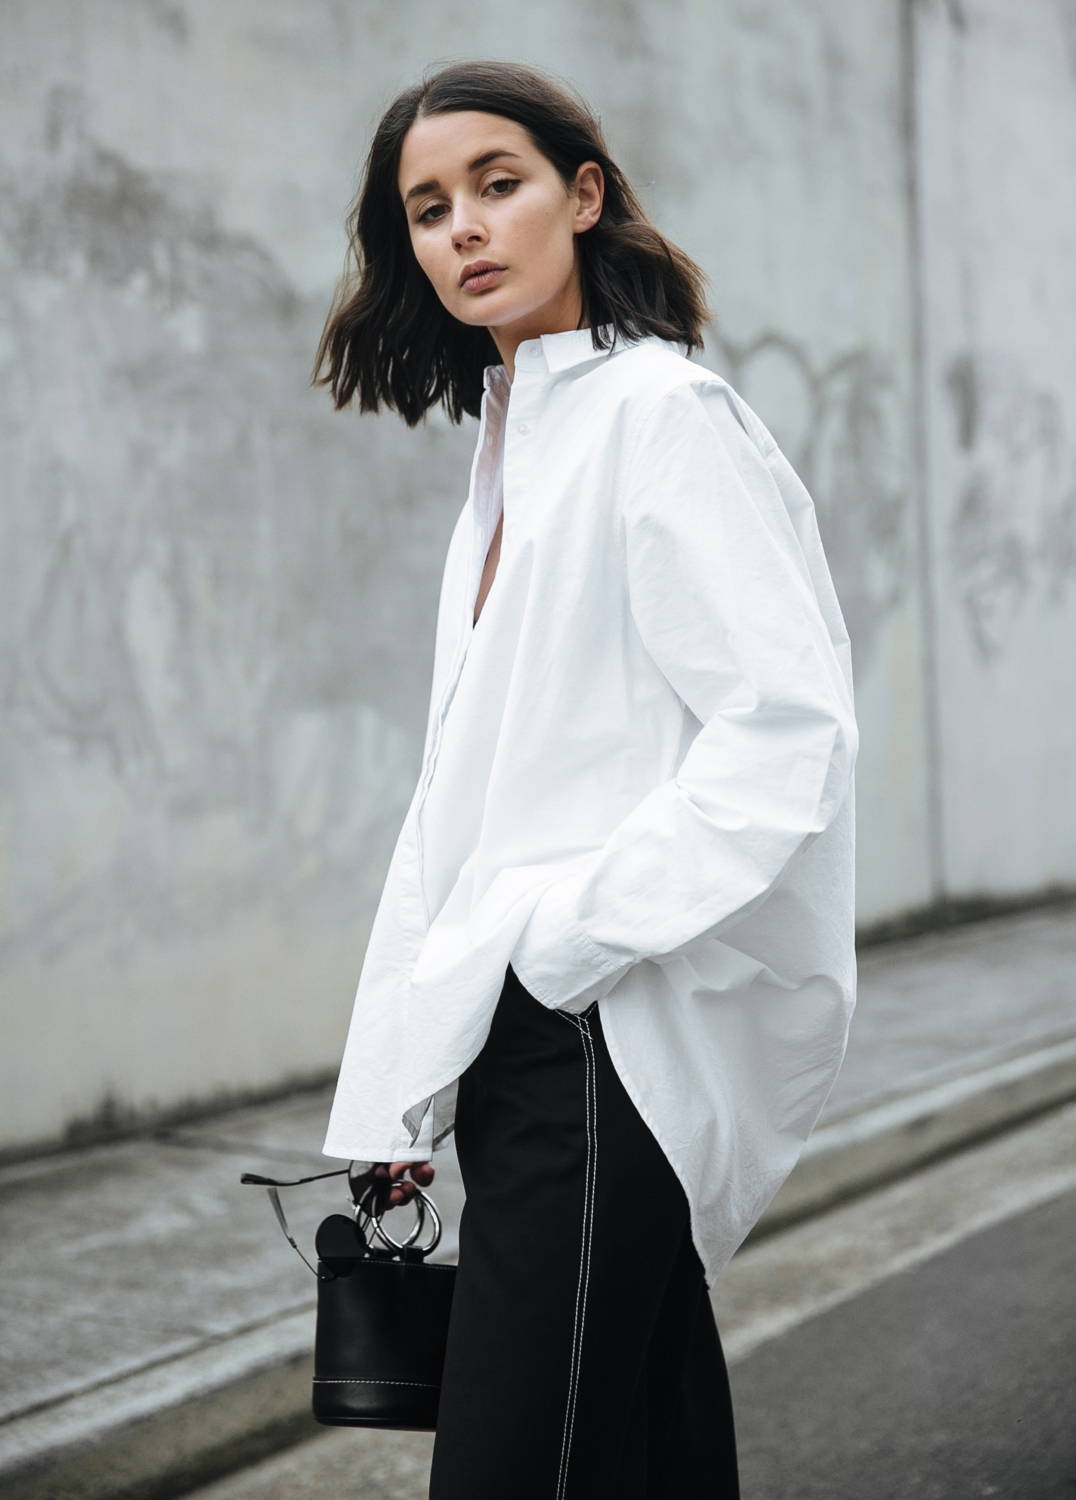 Just, Relax   Oversized clothing   Black and white outfit   Style   Outfit   HarperandHarley